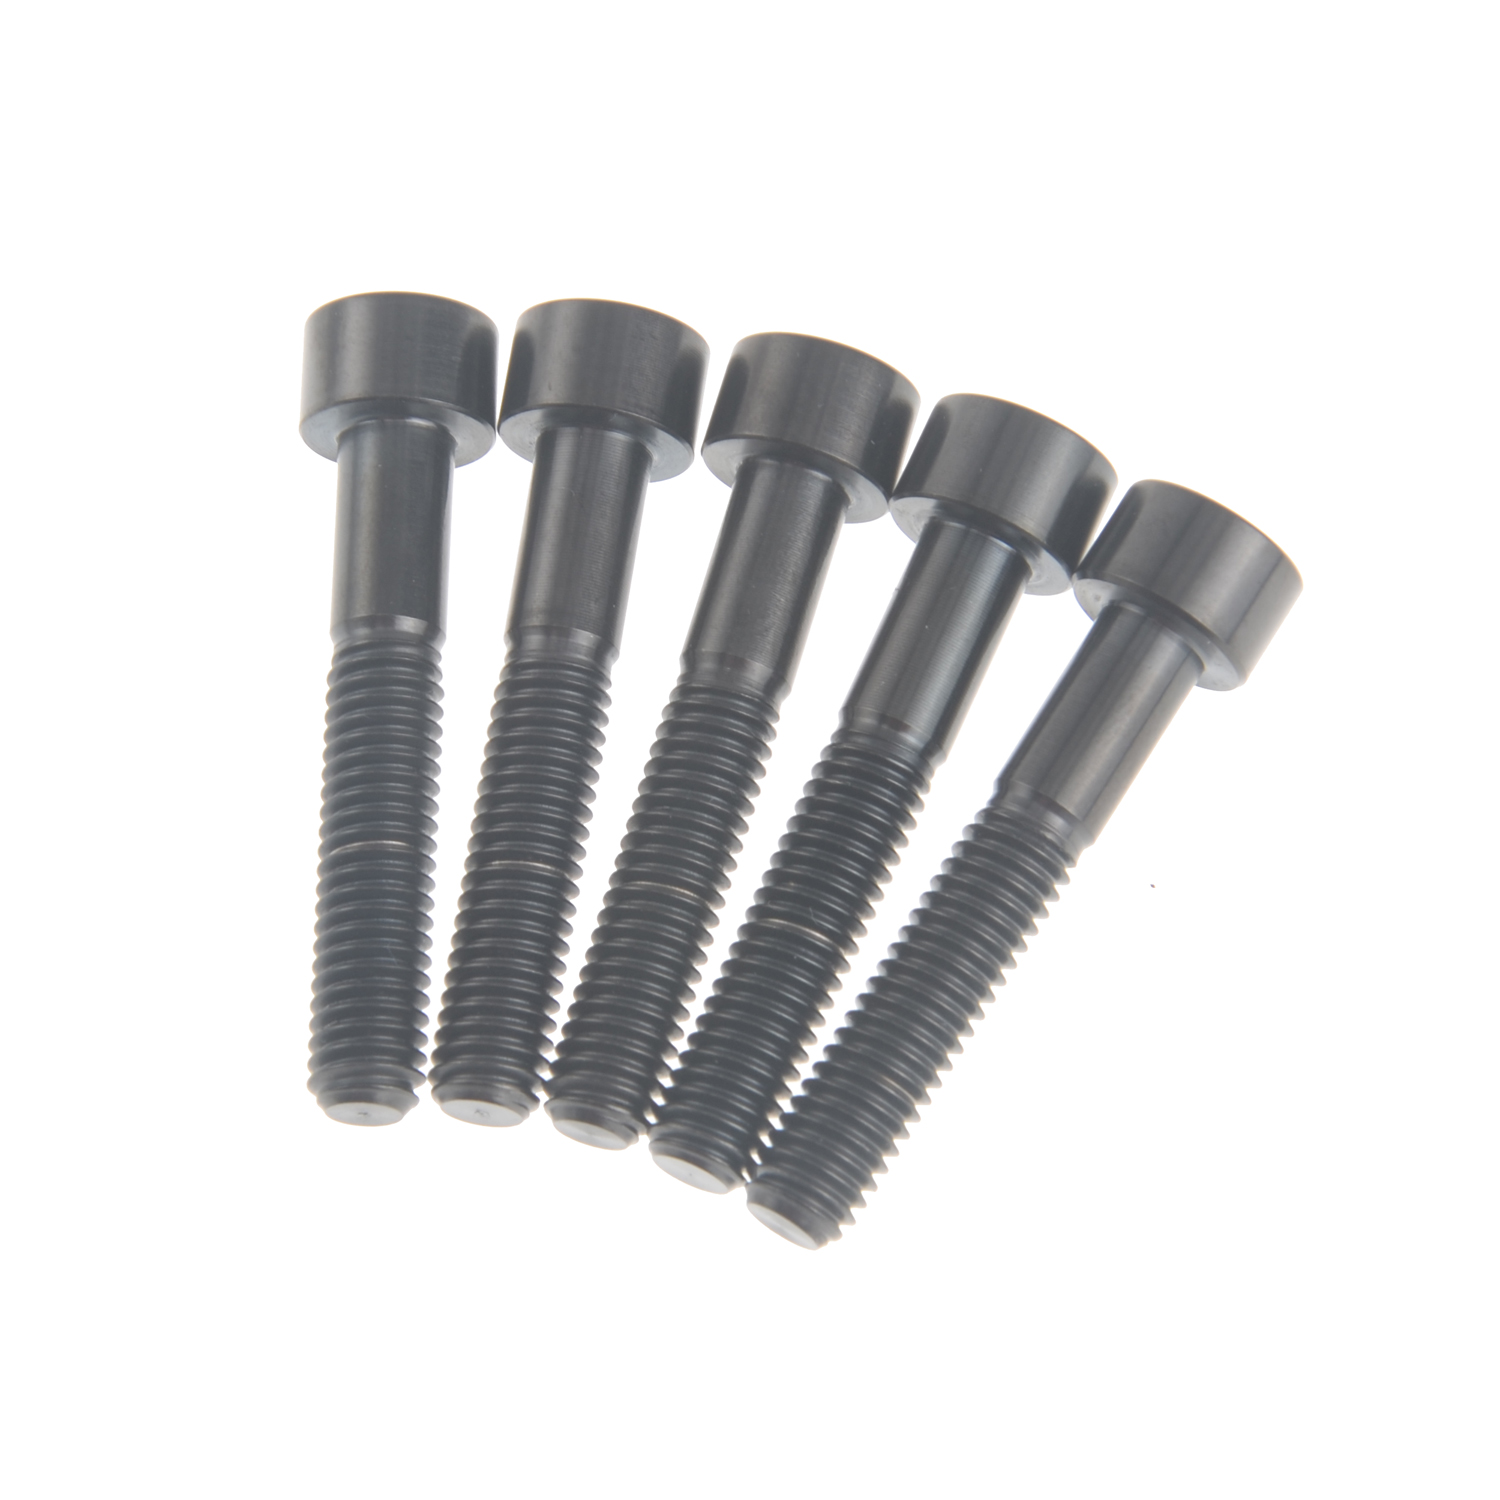 RockBros Titanium Ti Bolt Screw Conical Head for Headset M6 x 35mm 5pcs